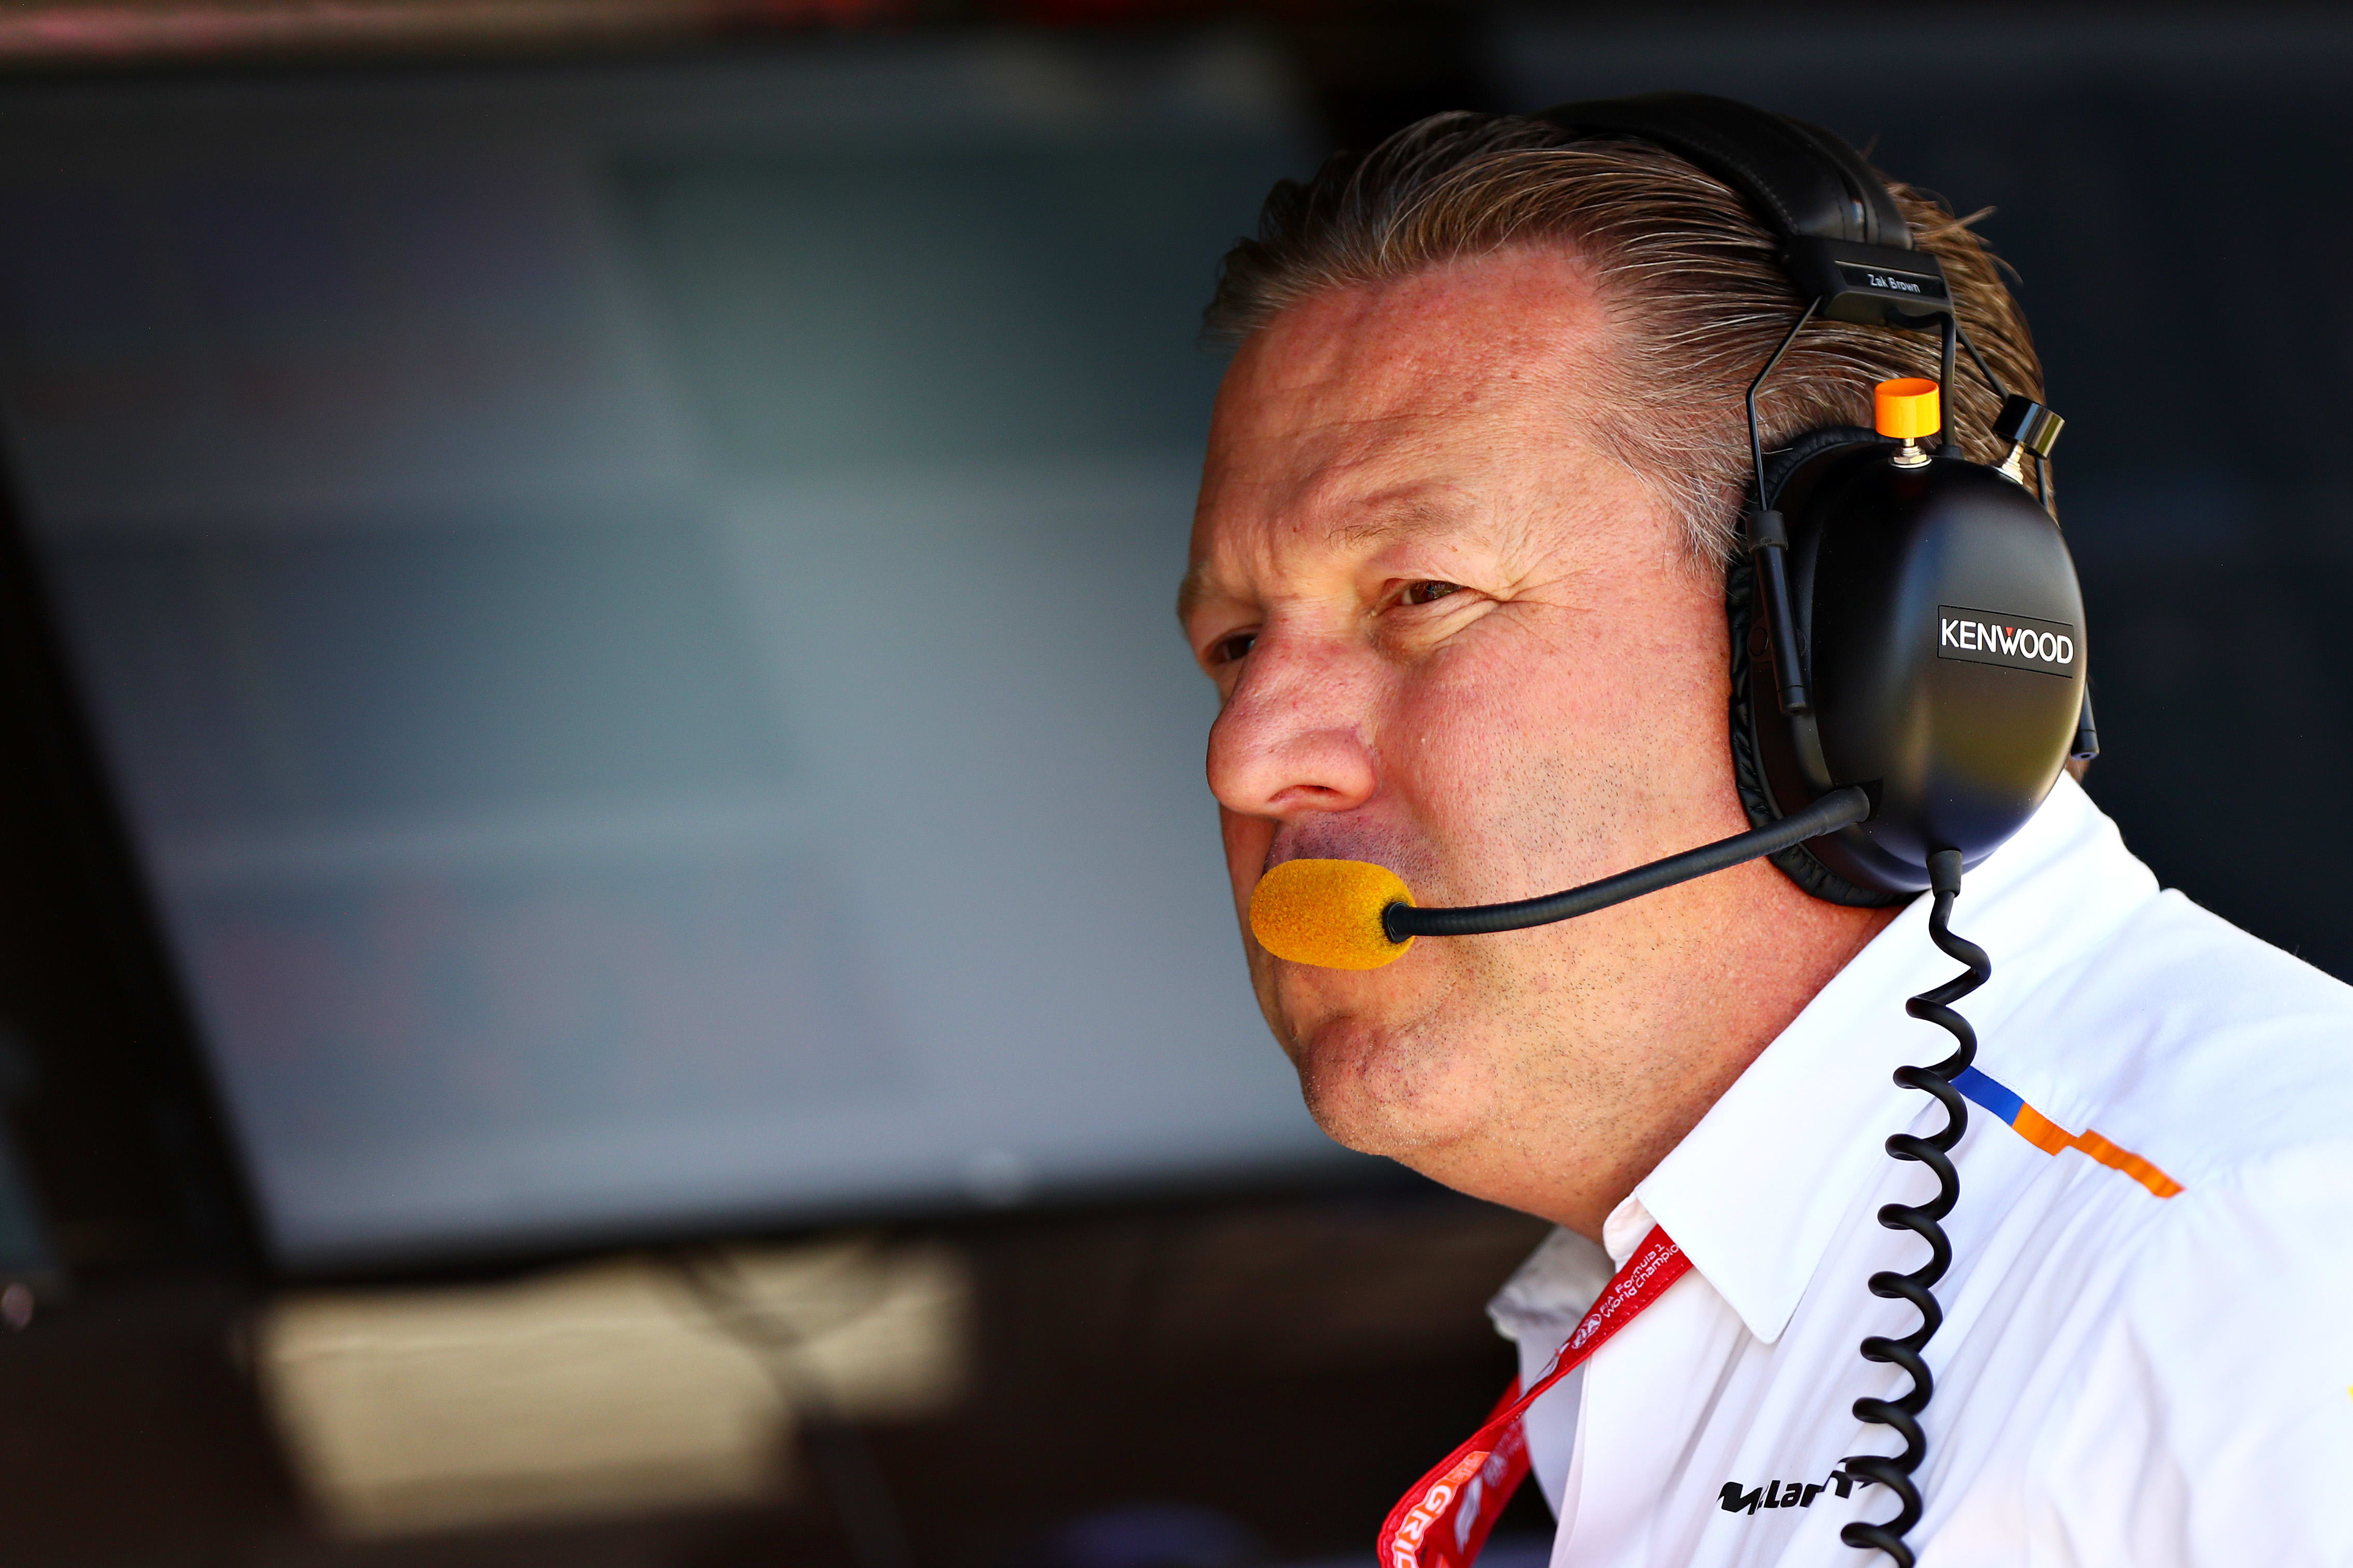 McLaren Racing CEO on challenges amid Brexit, trade tensions